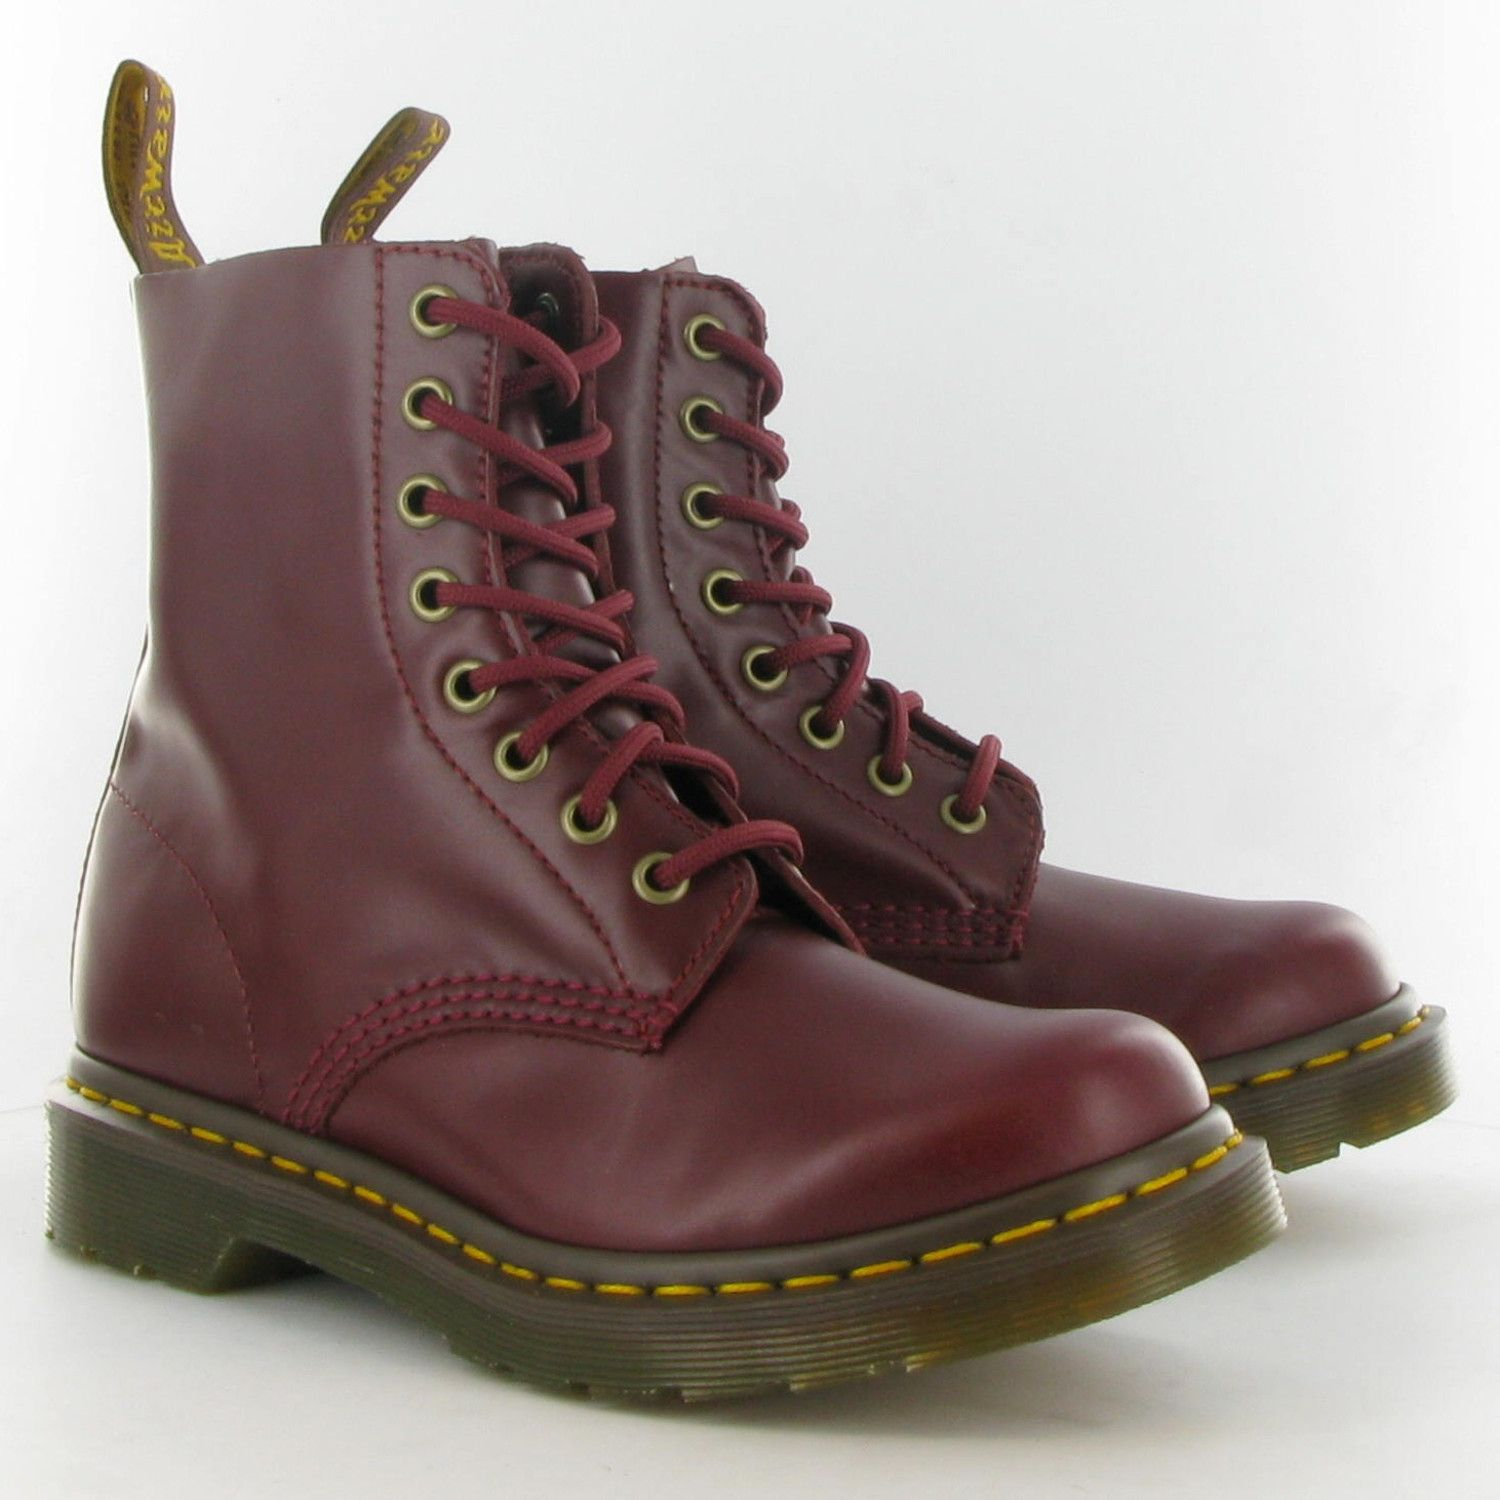 Dr. Martens Pascal in Shiraz. They are